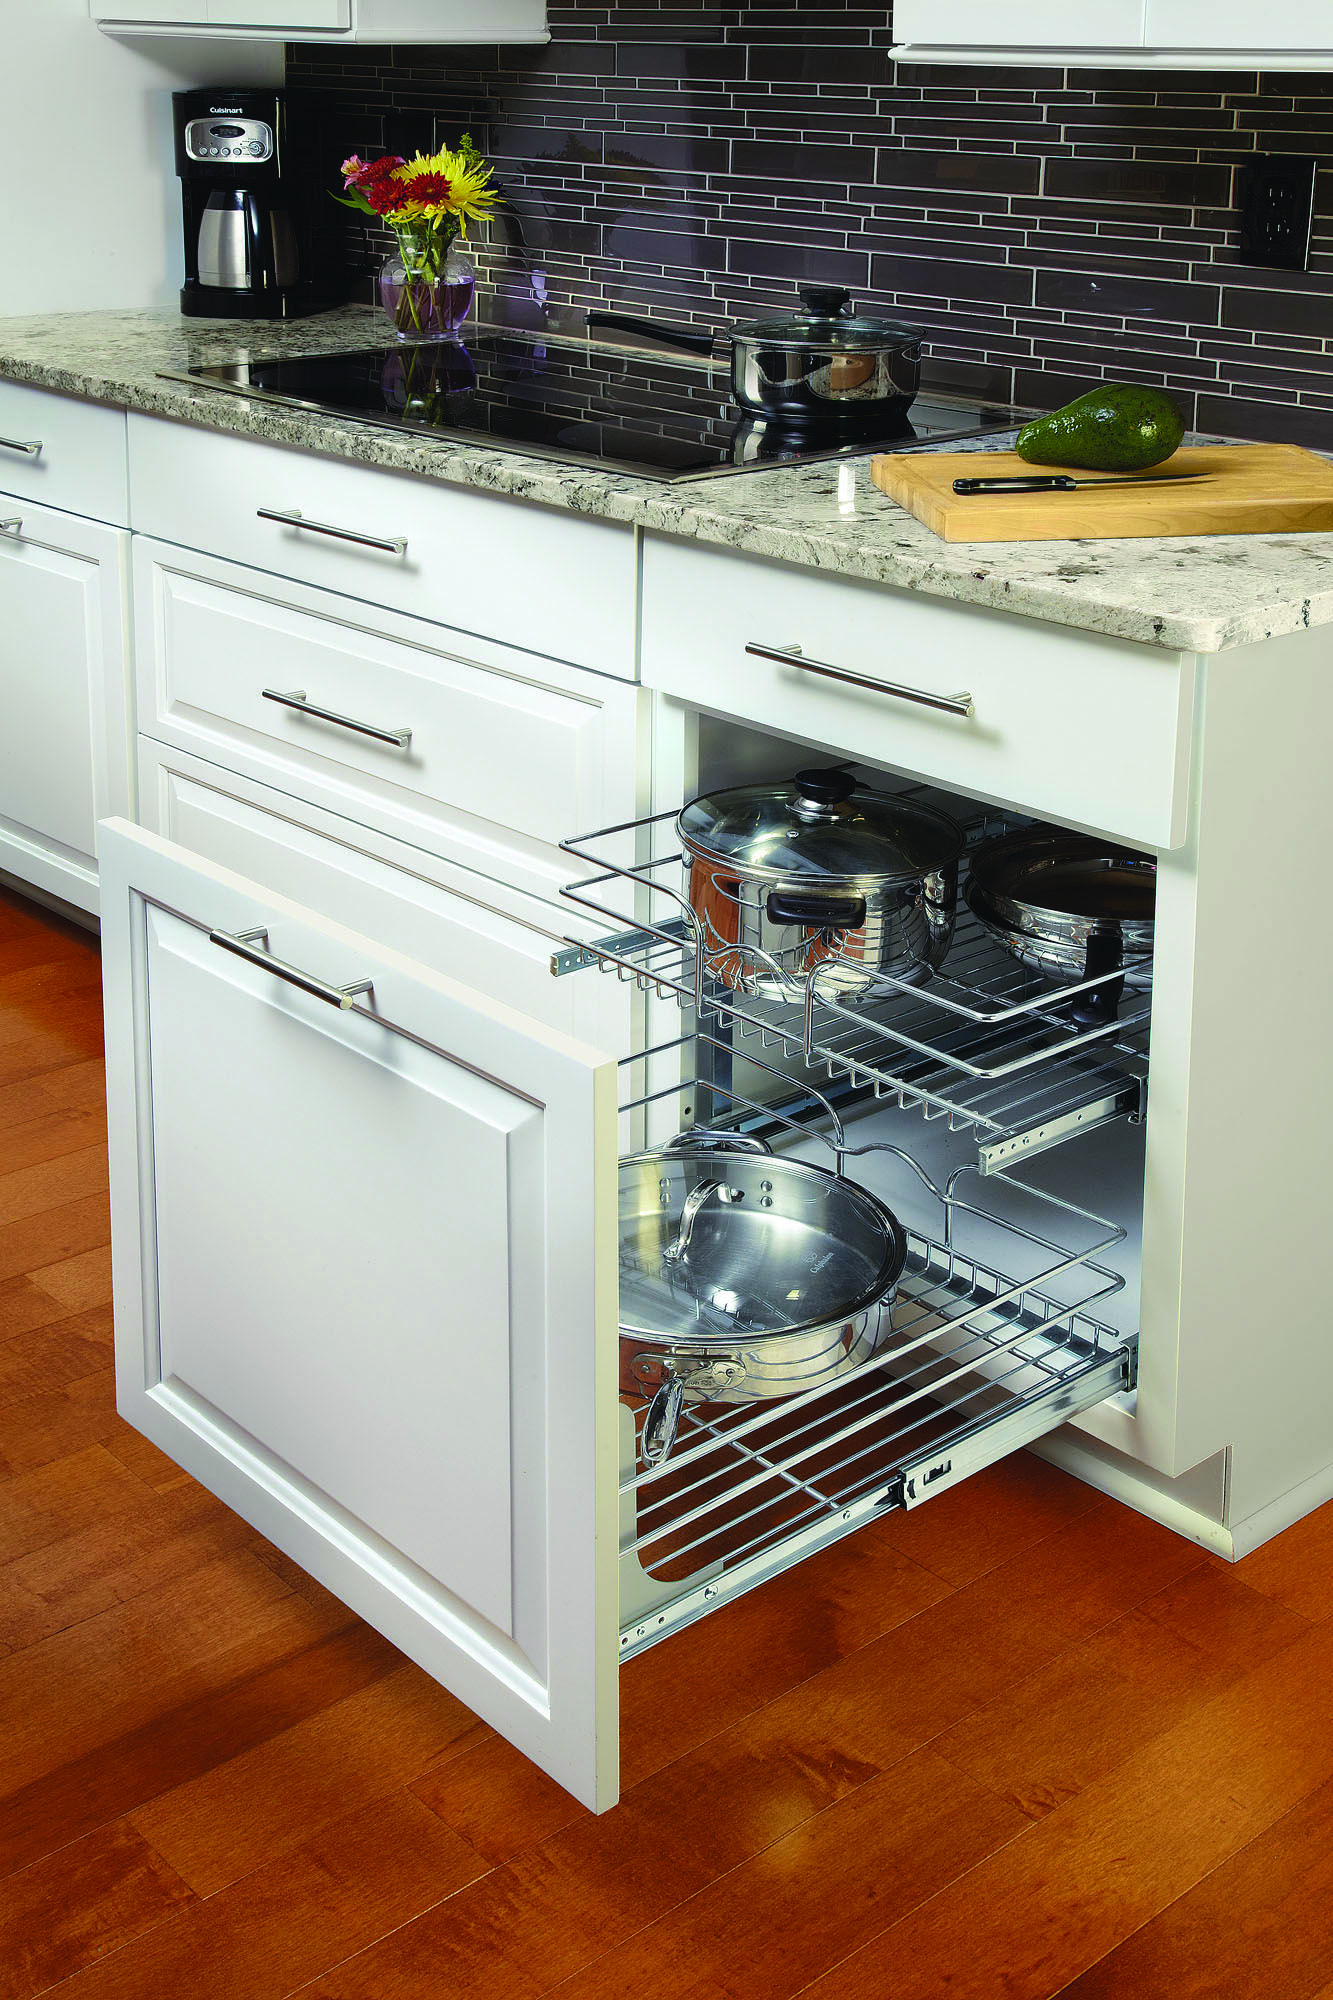 Change the way you organize your kitchen with a Rev A Shelf 21 x